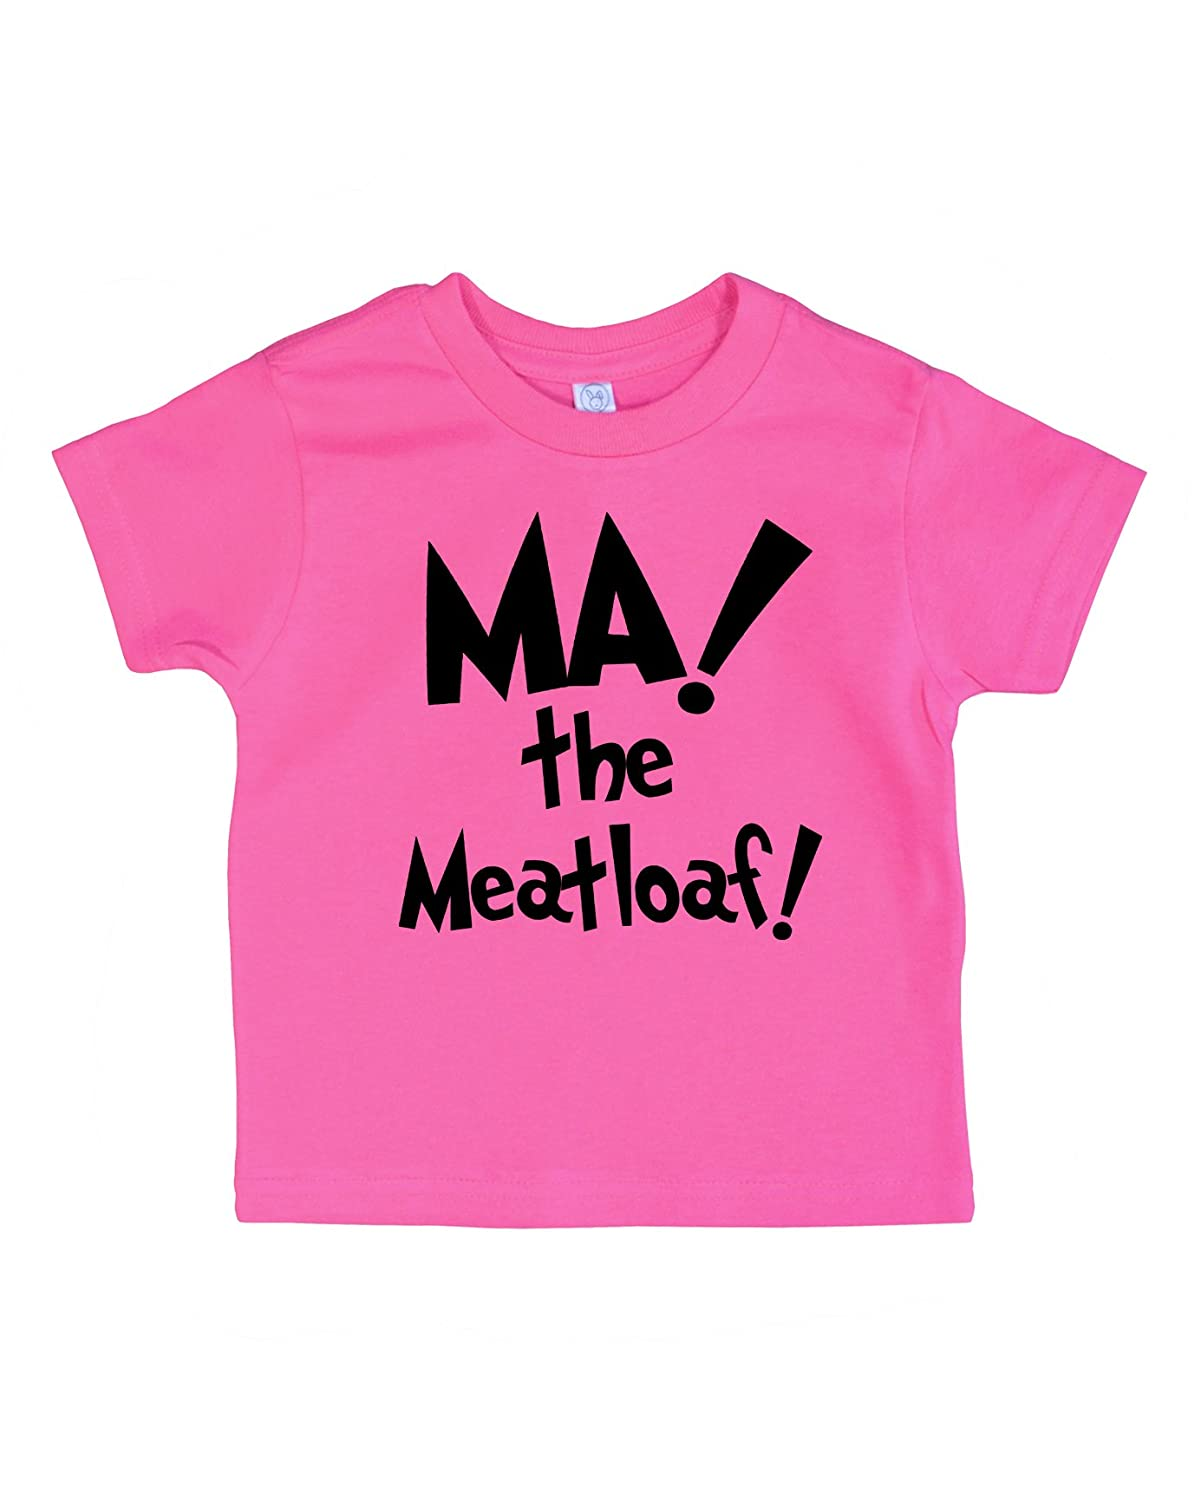 Cute Kids Graphic Toddler T-Shirt Ma The Meatloaf RB Clothing Co